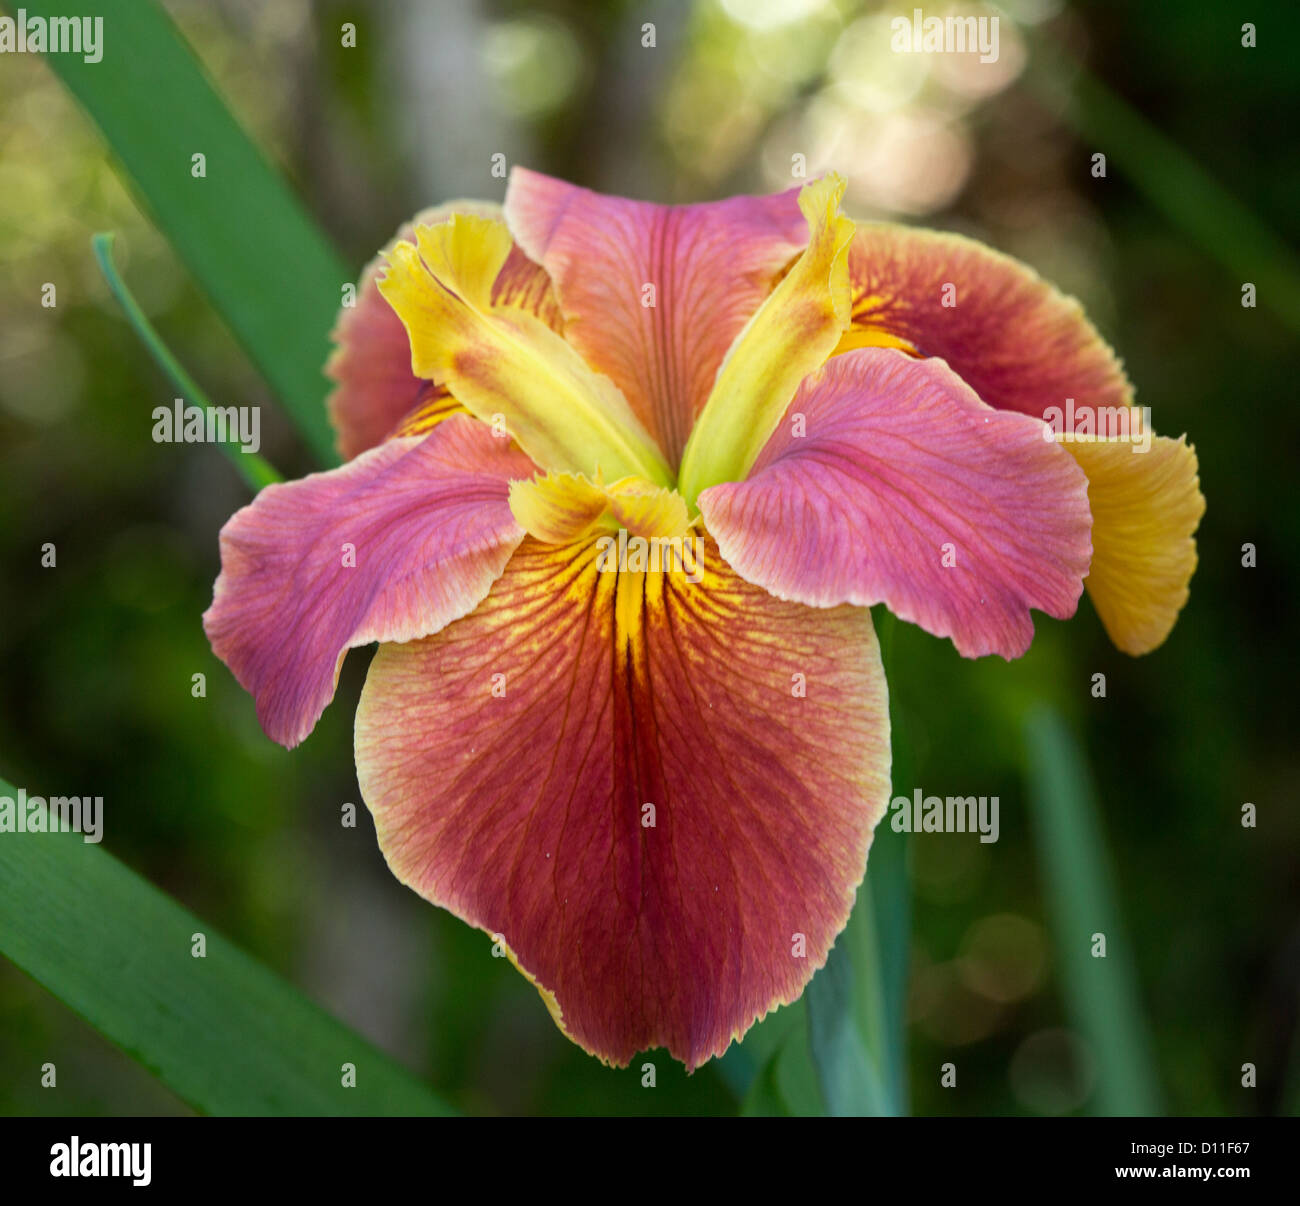 Louisiana iris flower with red and yellow petals and emerald green louisiana iris flower with red and yellow petals and emerald green foliage izmirmasajfo Images